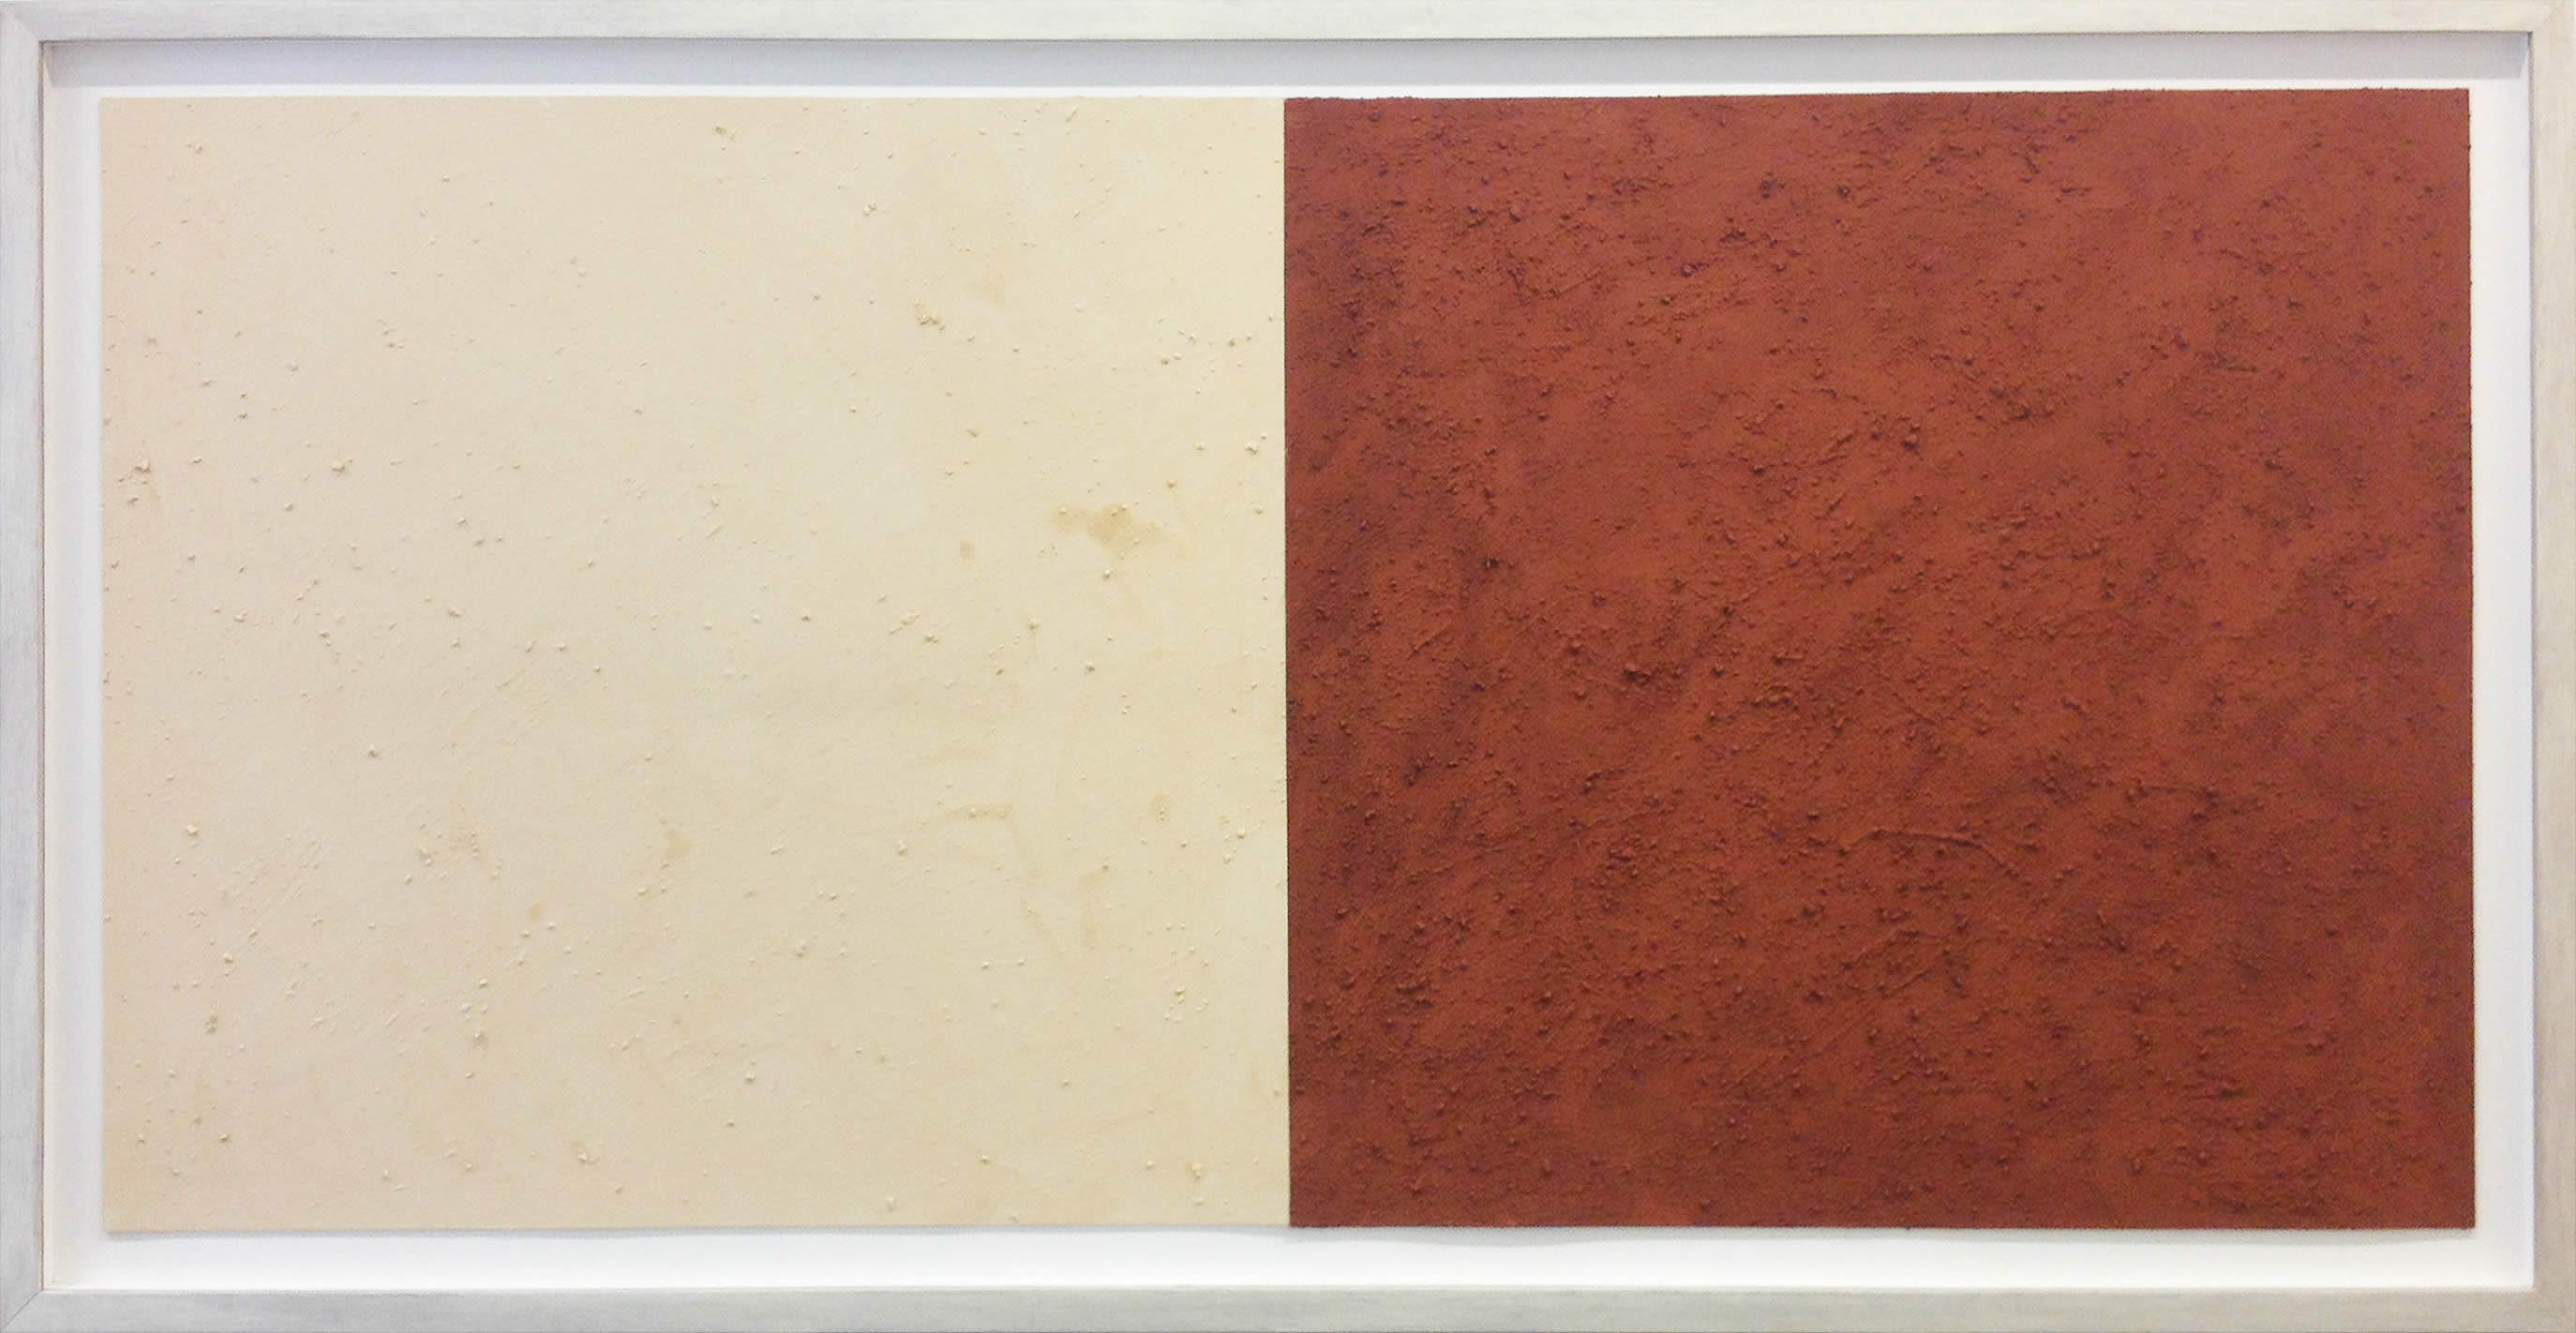 Karel Nel, Potent Fields, 2002, red and white ochre from the Trankei, South Africa, 122 x 242 cm